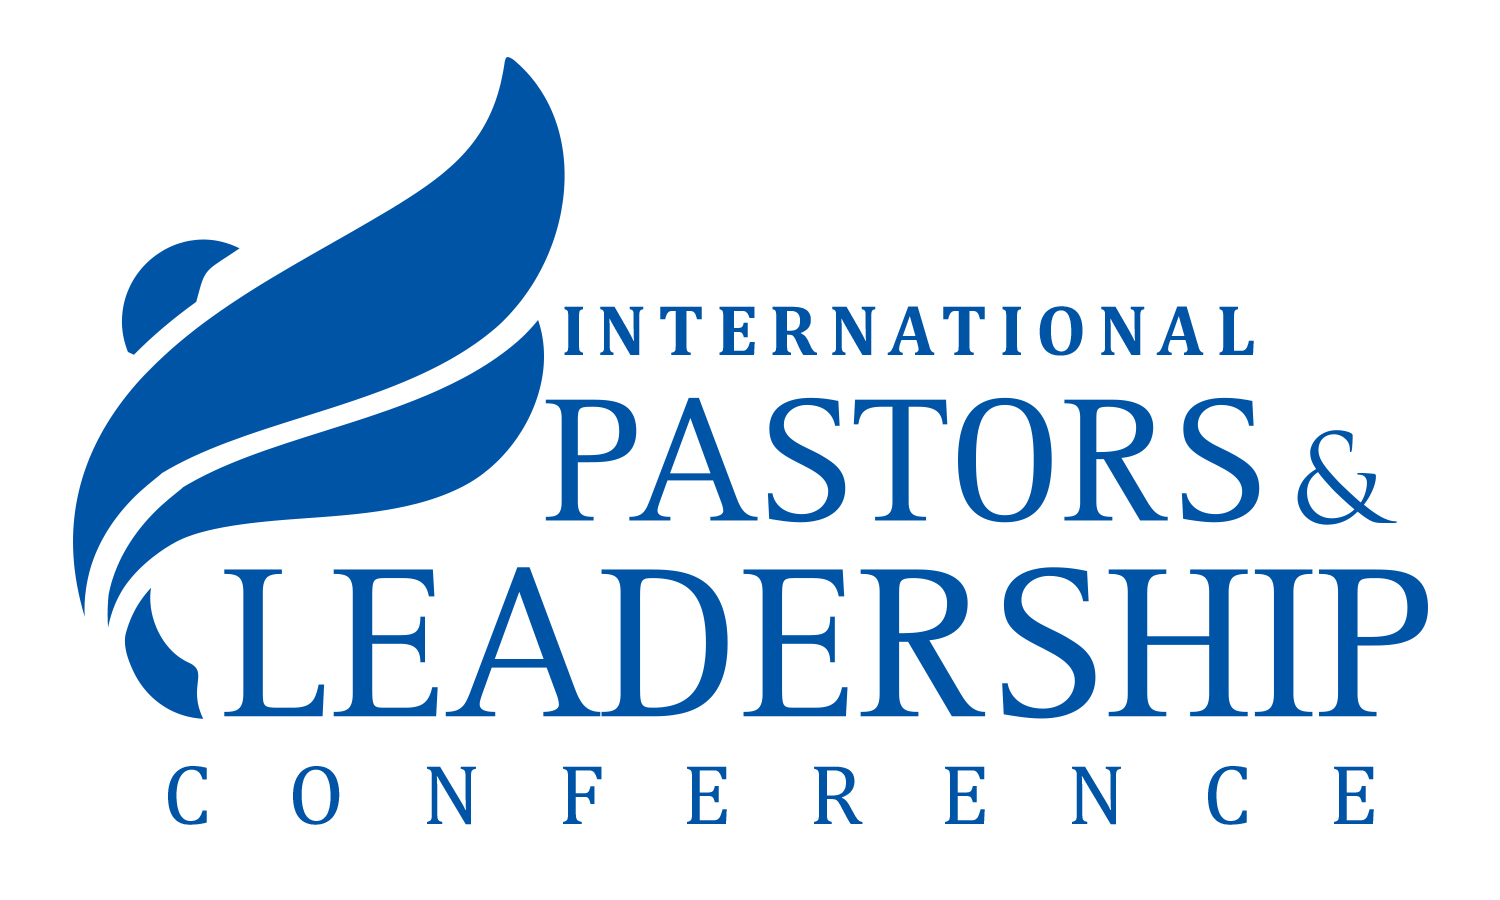 International Pastors & Leadership Conference logo